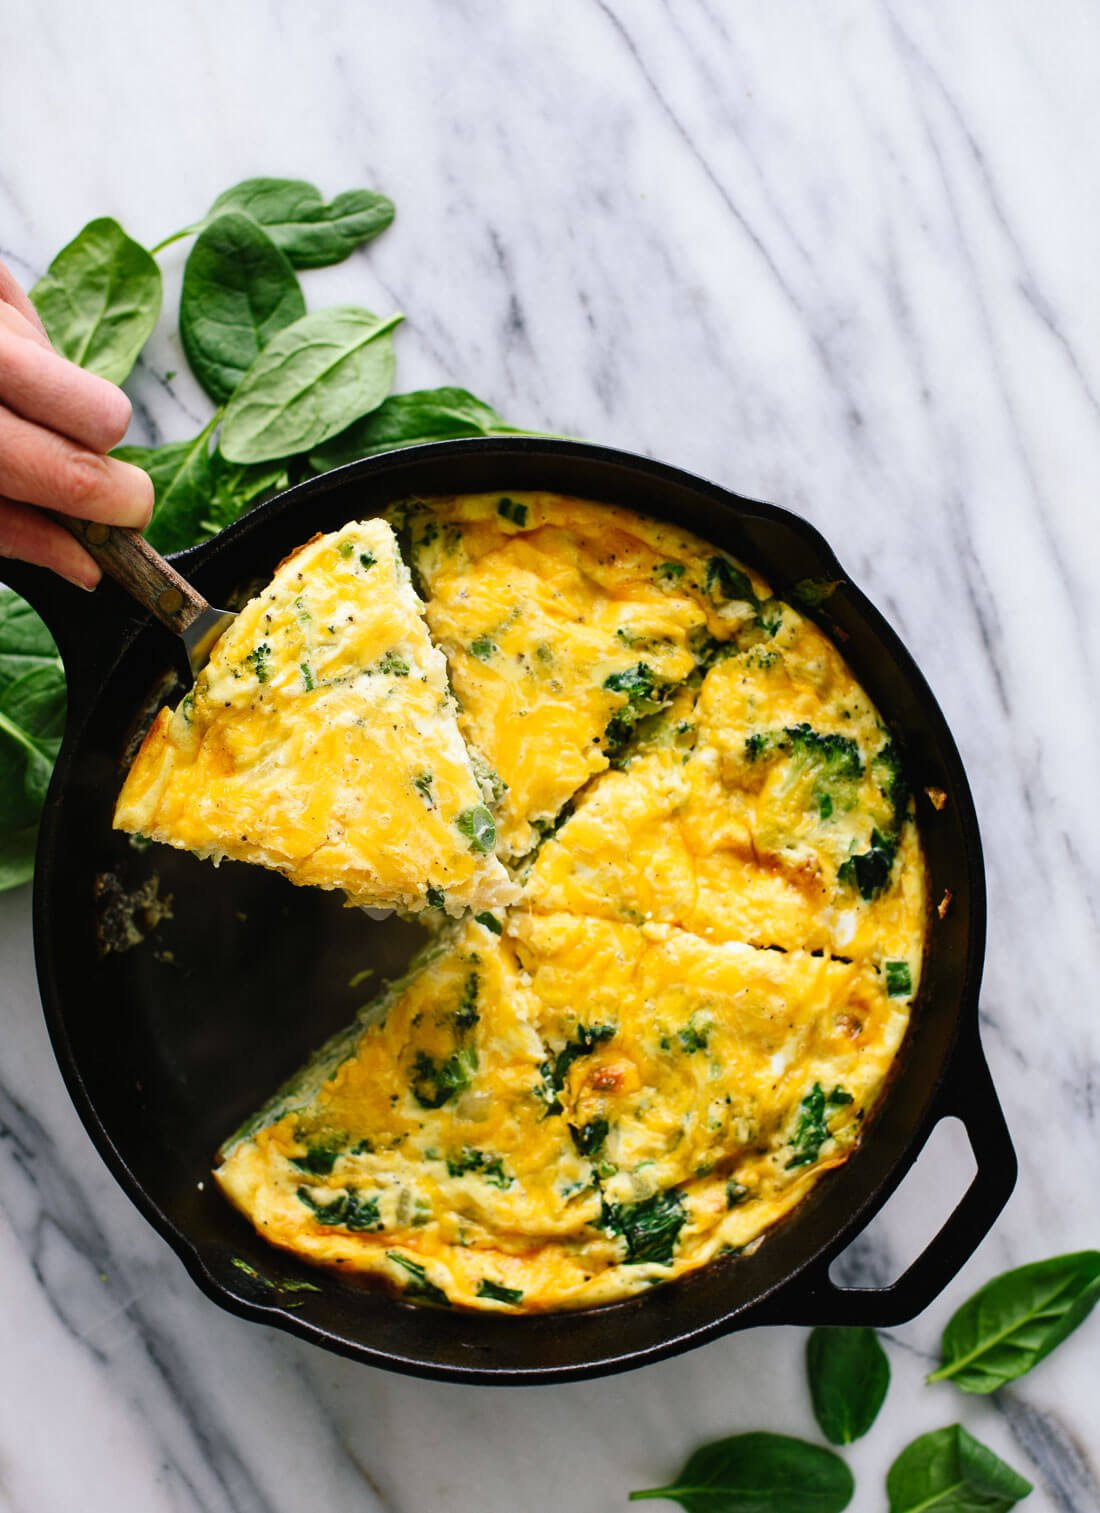 This delicious spinach, broccoli and cheddar frittata is great for brunch!